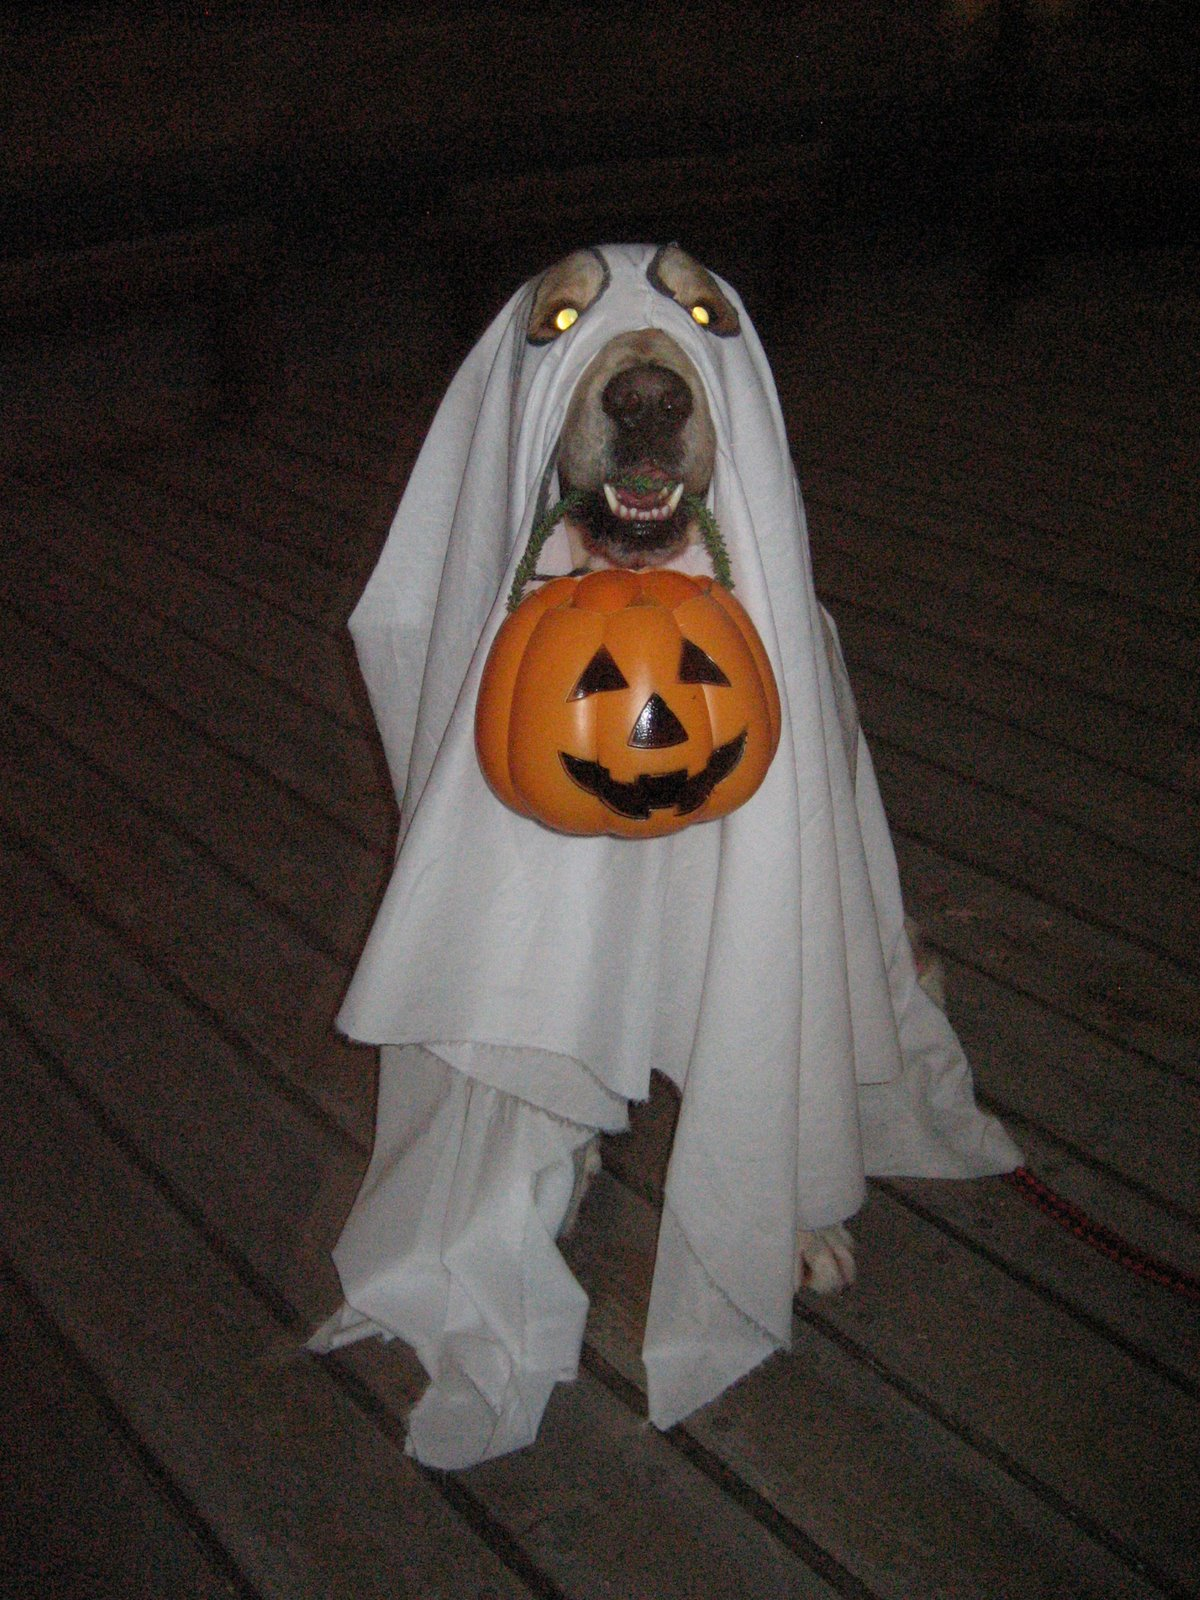 homer, the golden retriever: preparing for halloween and dad's barkday